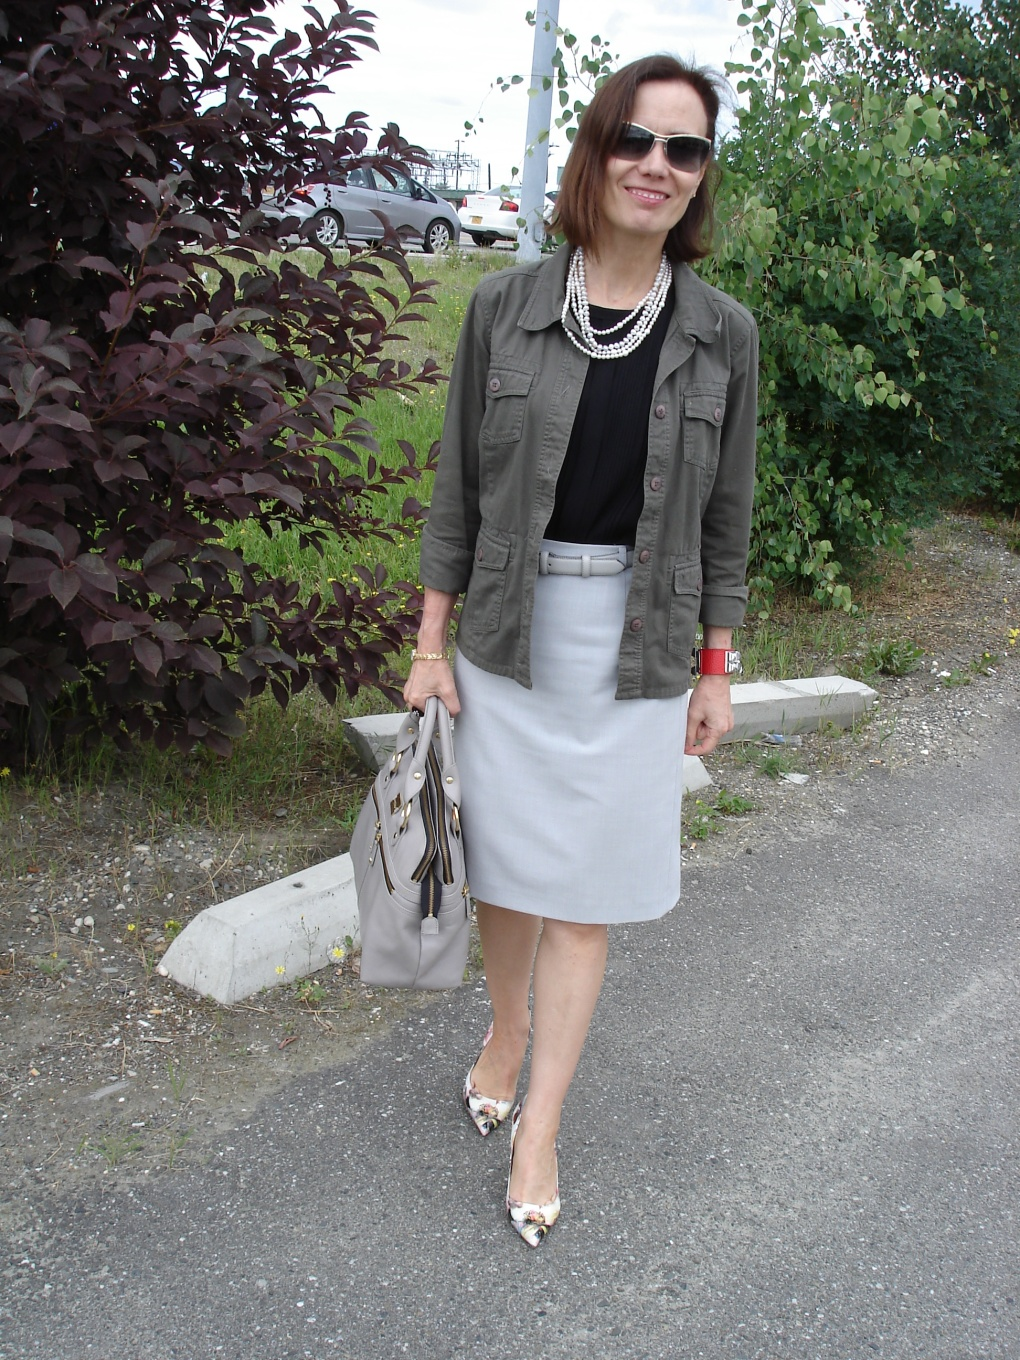 fashion over 50 woman in Casual Friday outfit